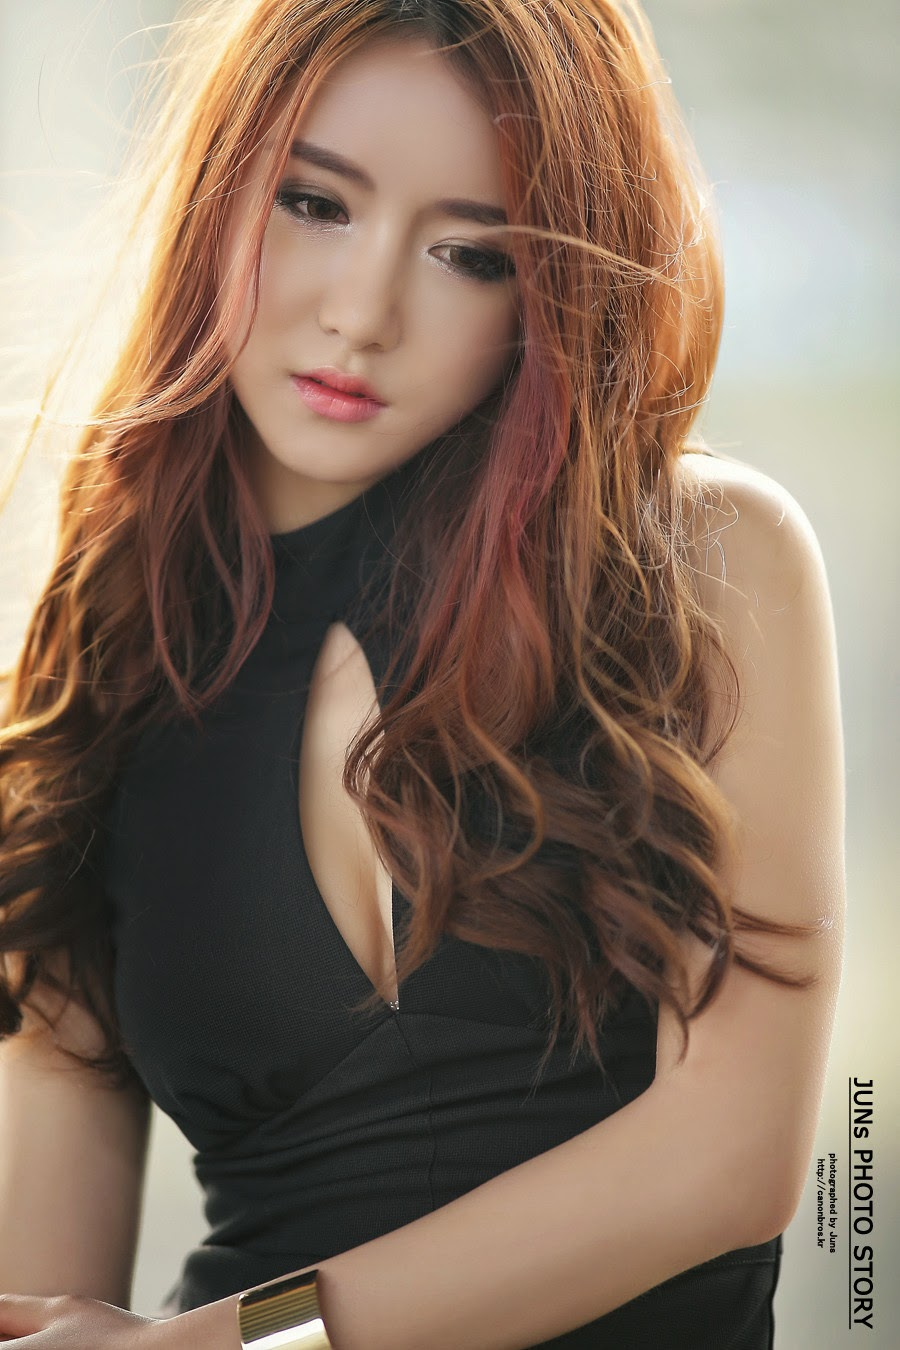 4 Lee Yeon Yoon-very cute asian girl-girlcute4u.blogspot.com